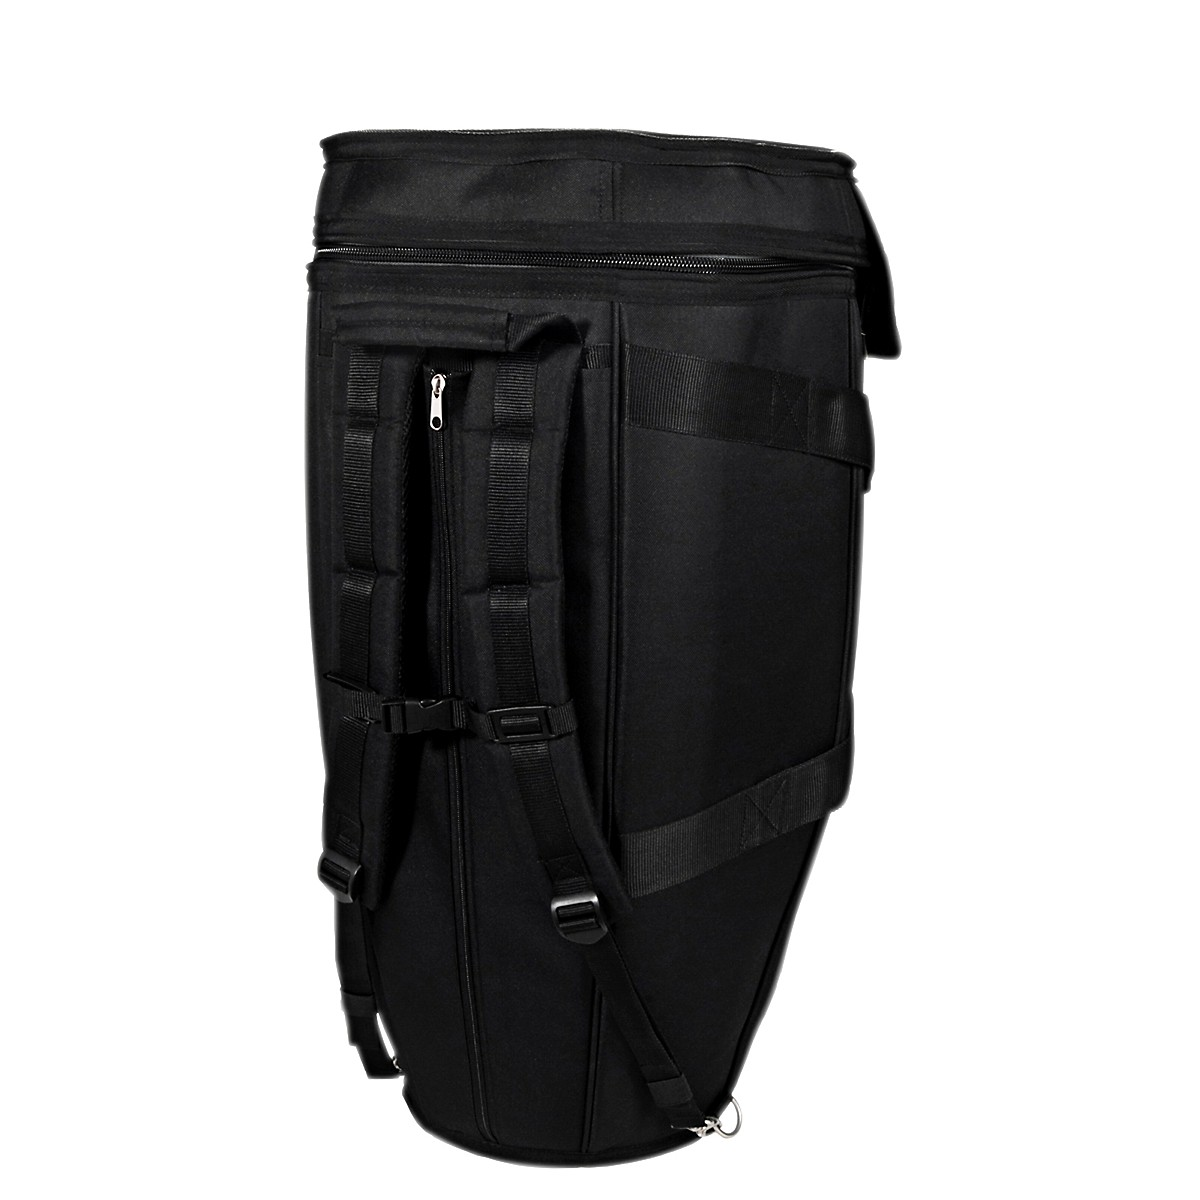 Ahead Armor Cases Super Tumba Conga Case Deluxe with Back Pack Straps